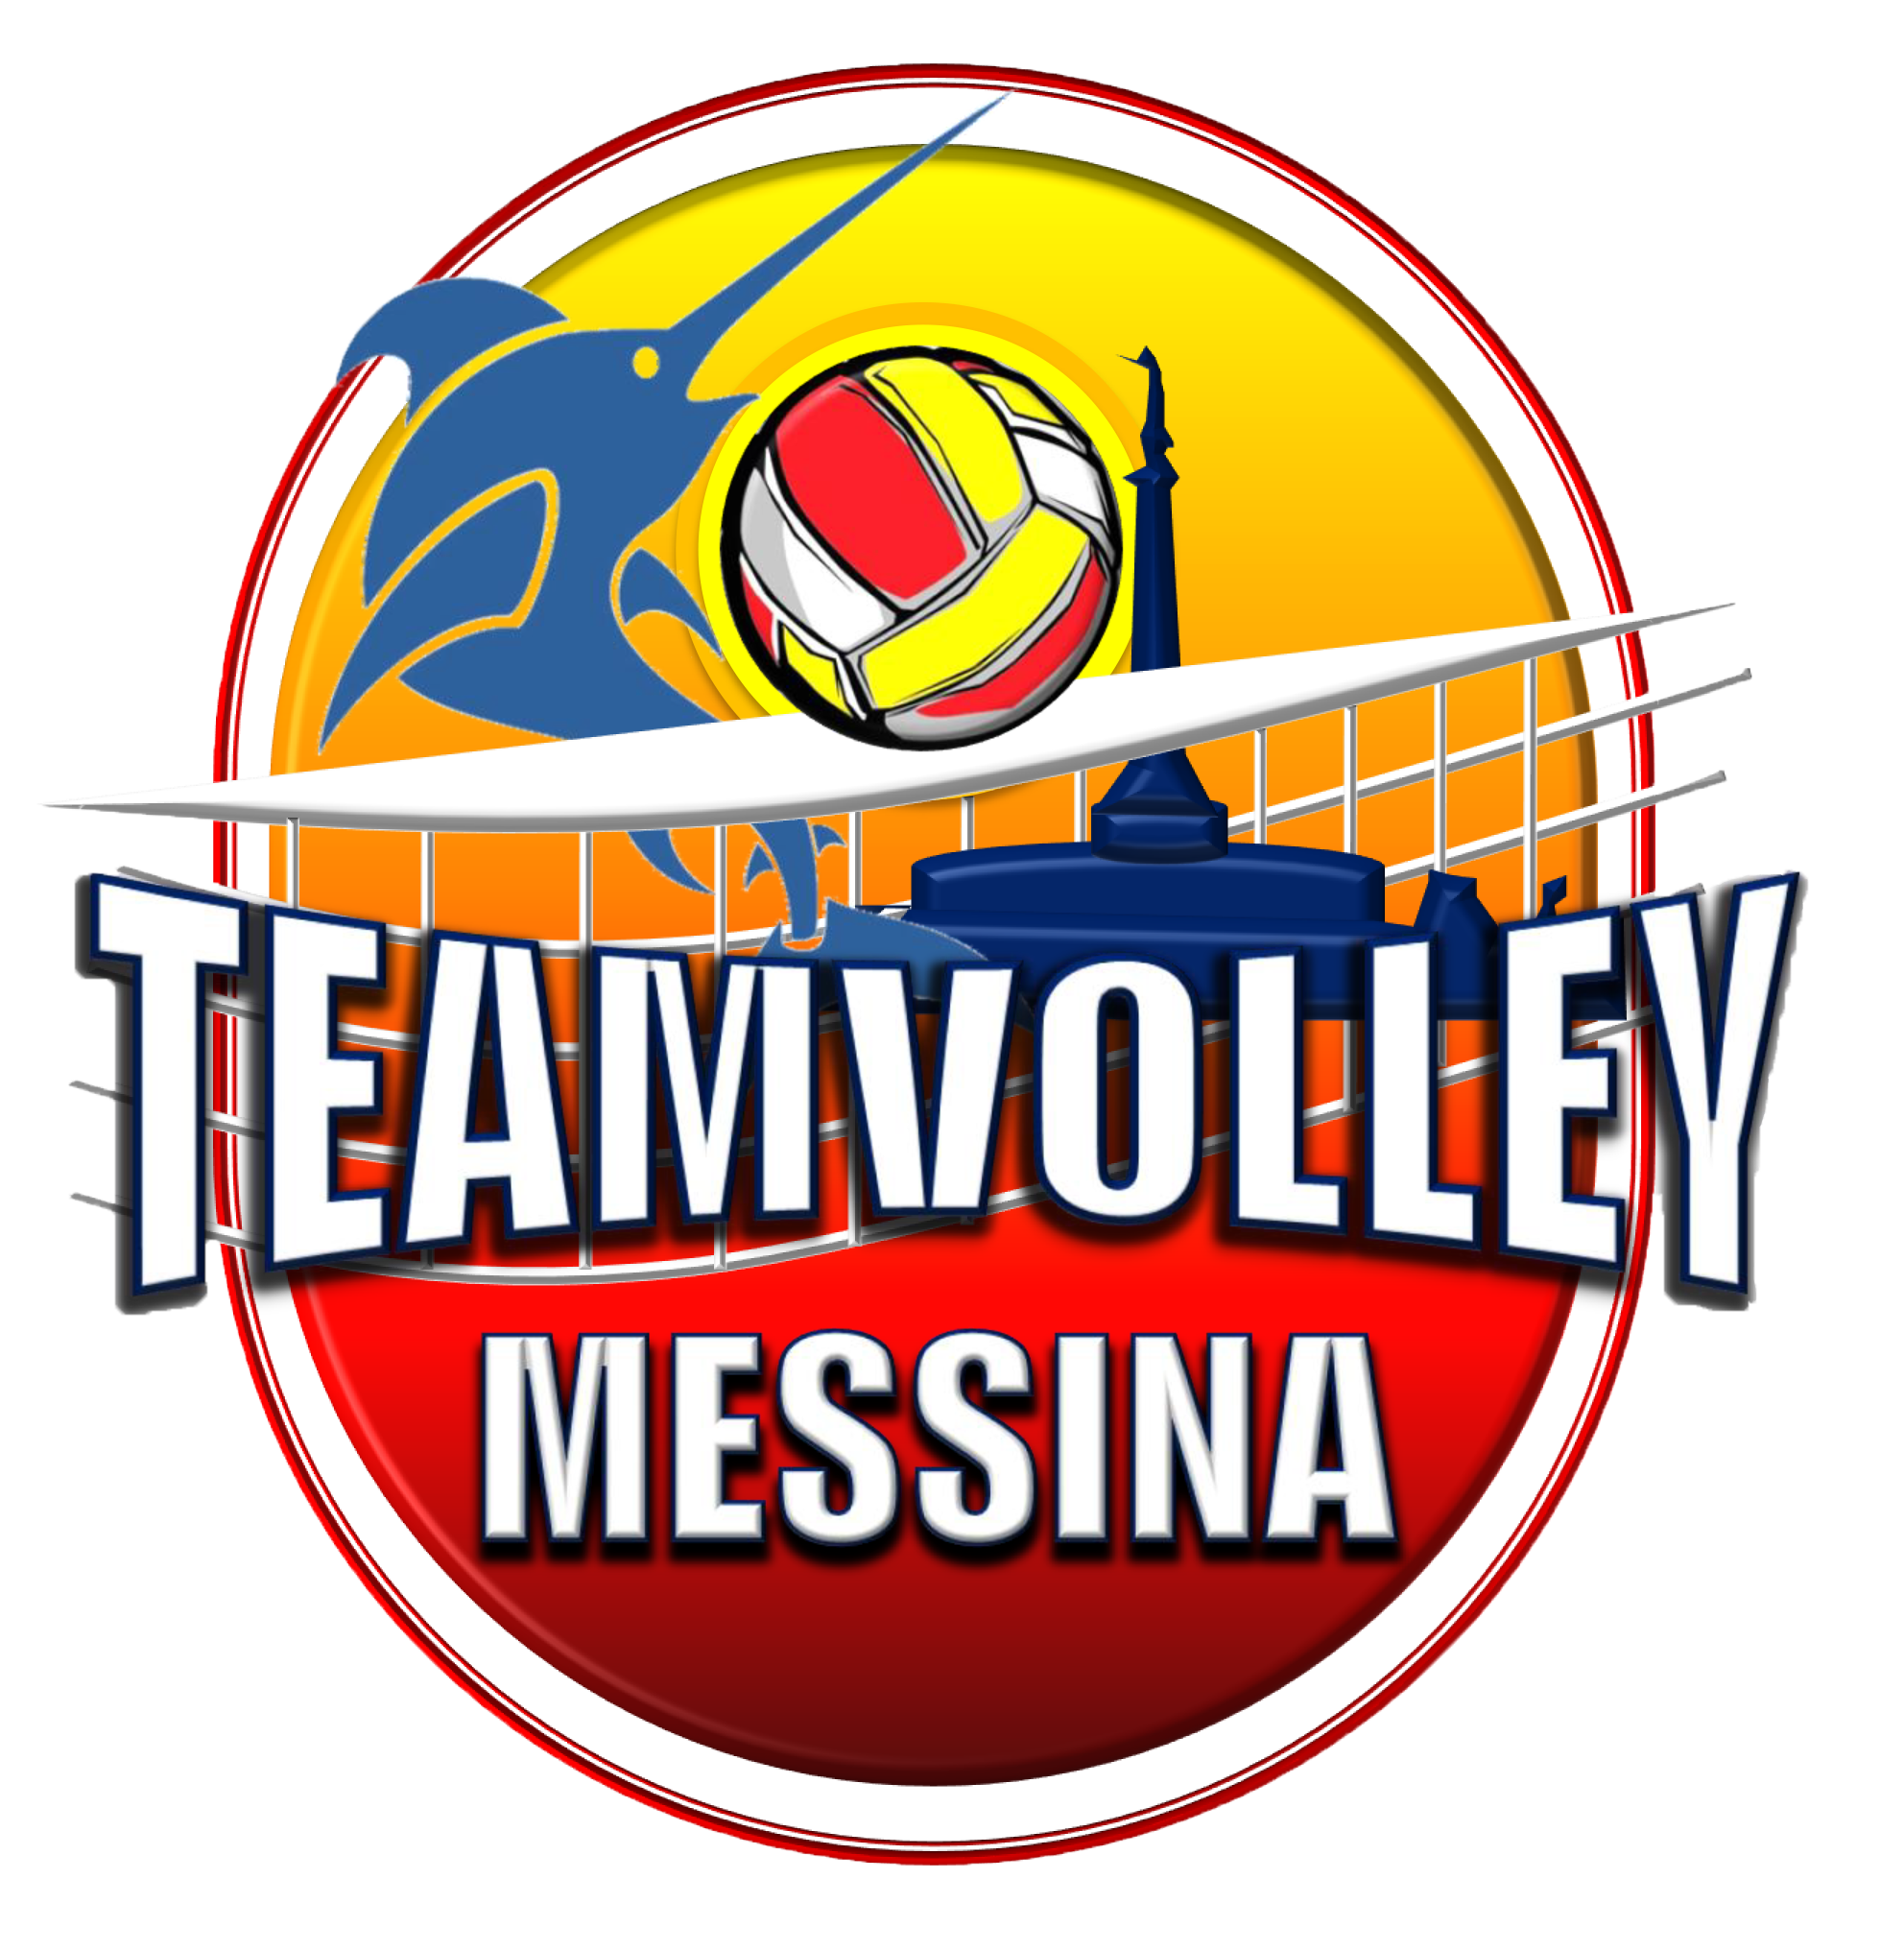 TEAM VOLLEY MESSINA 9.0-3A